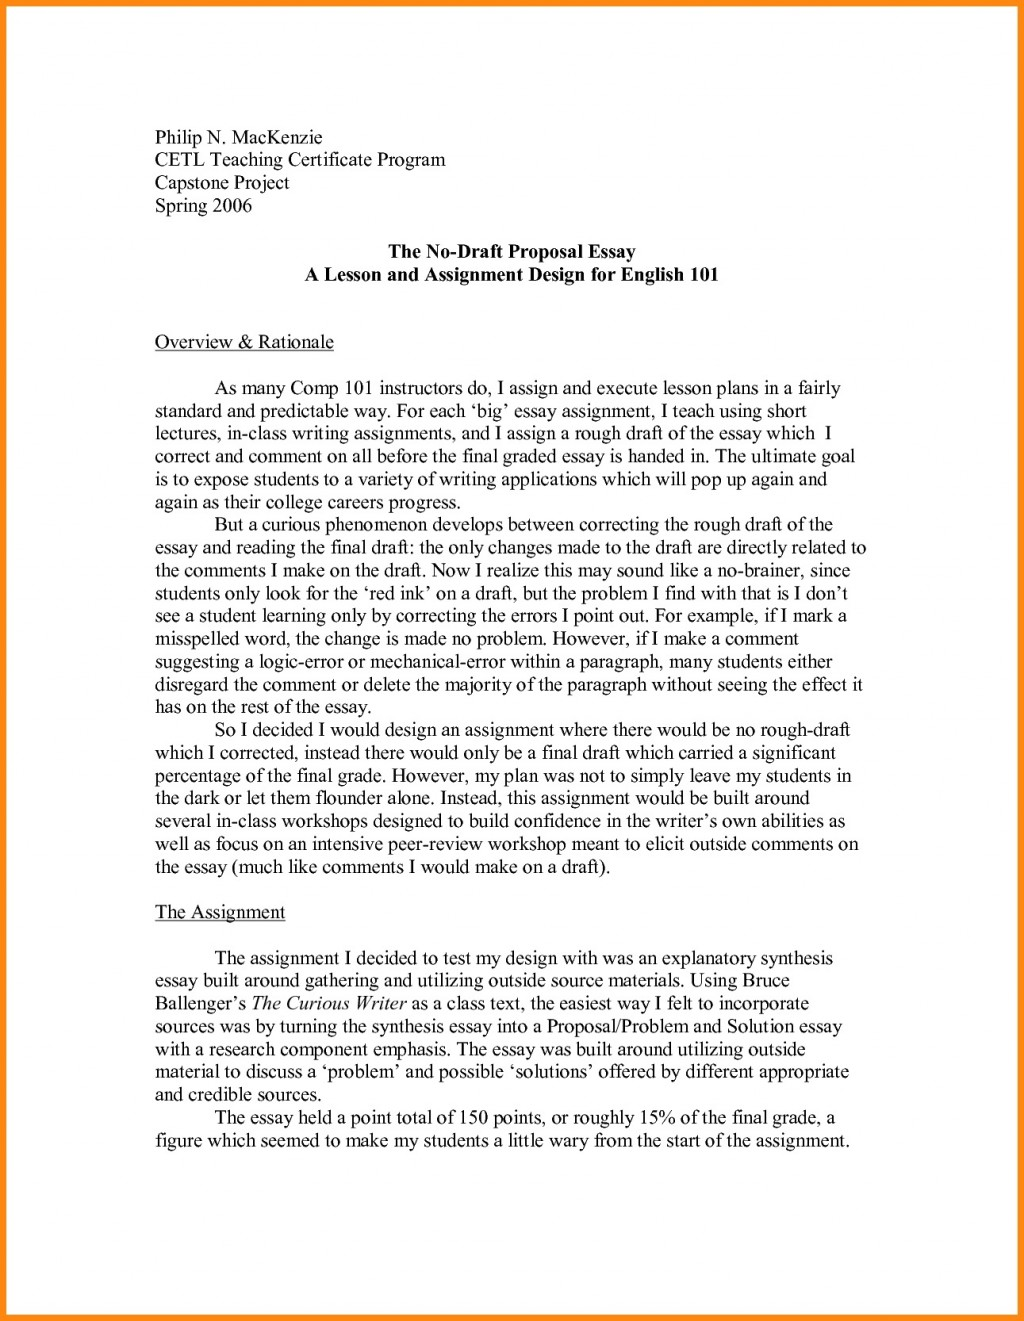 019 Research Paper Papers Topics For Finance Topic Proposal Example Essay At Phenomenal High School Students In Management Large